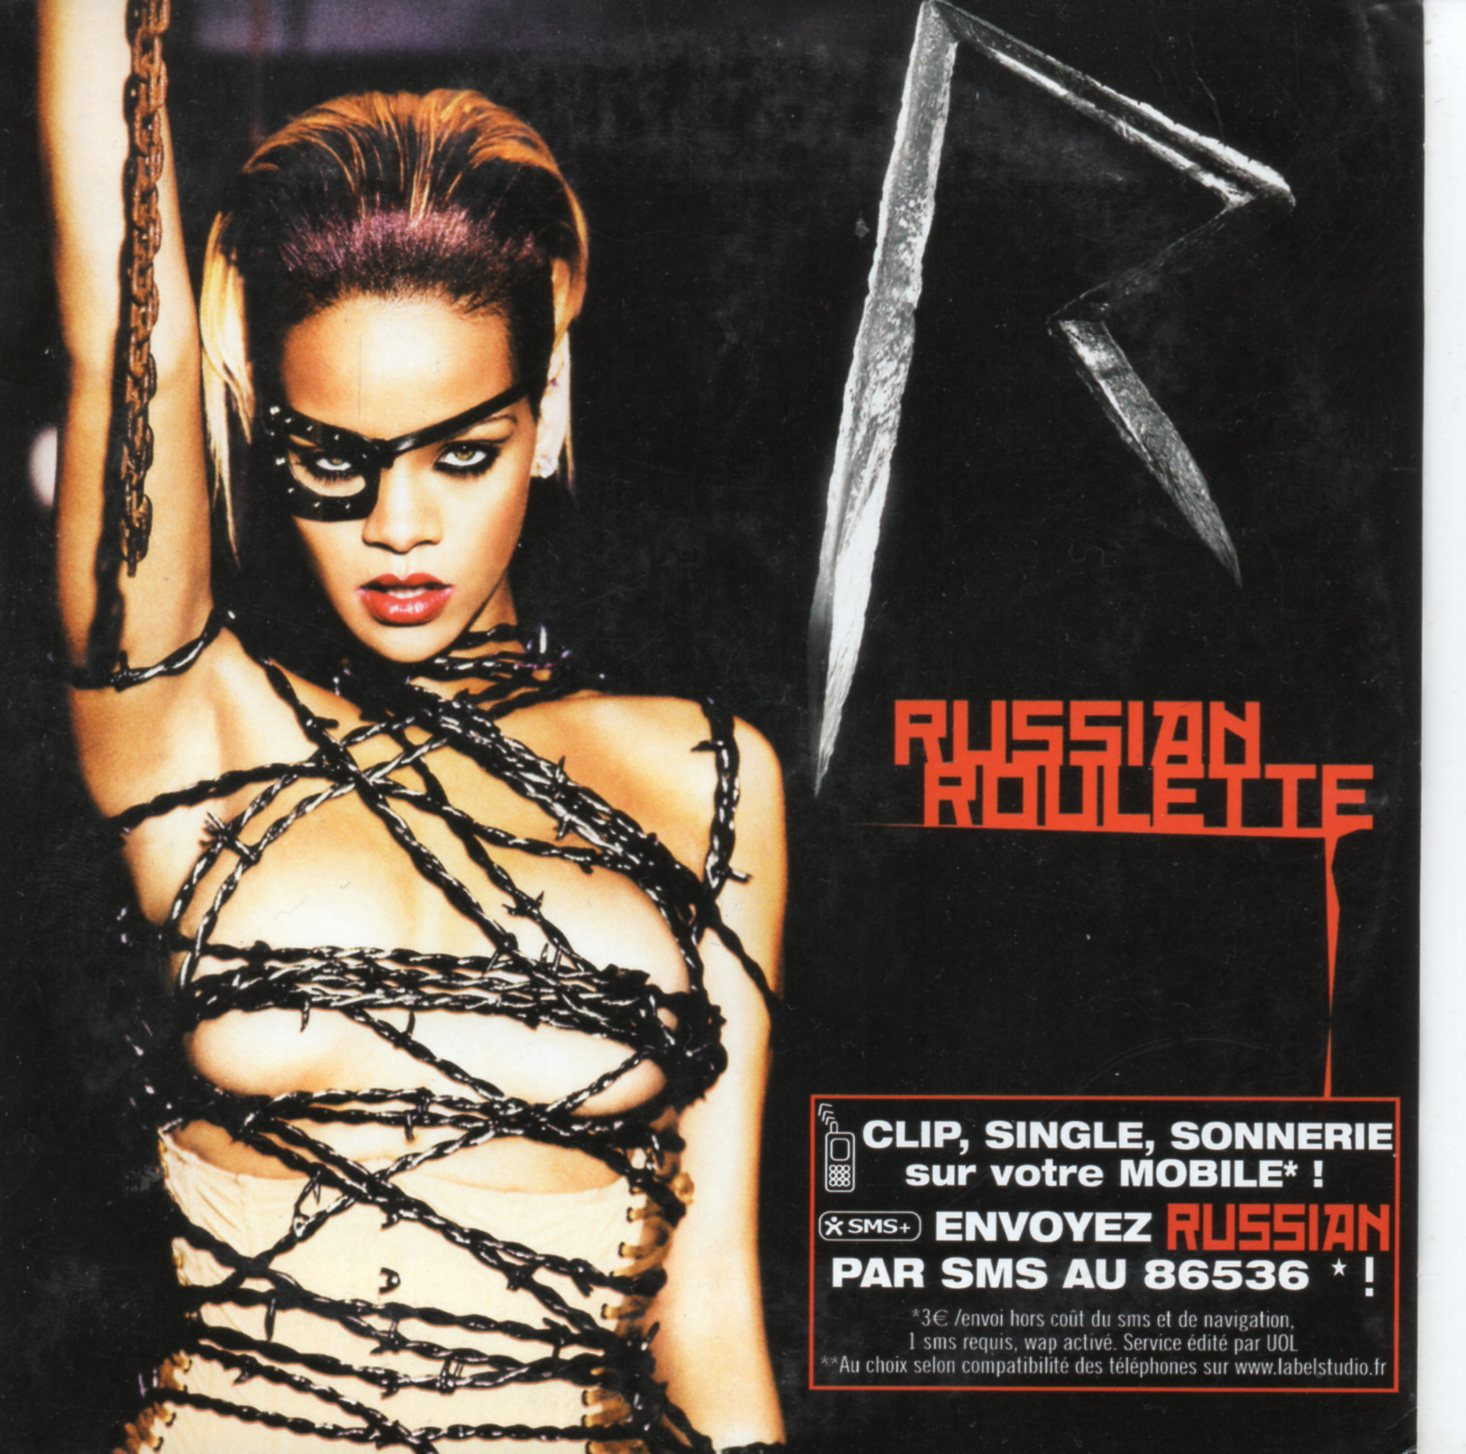 RIHANNA - Russian Roulette 2-track CARD SLEEVE - CD single